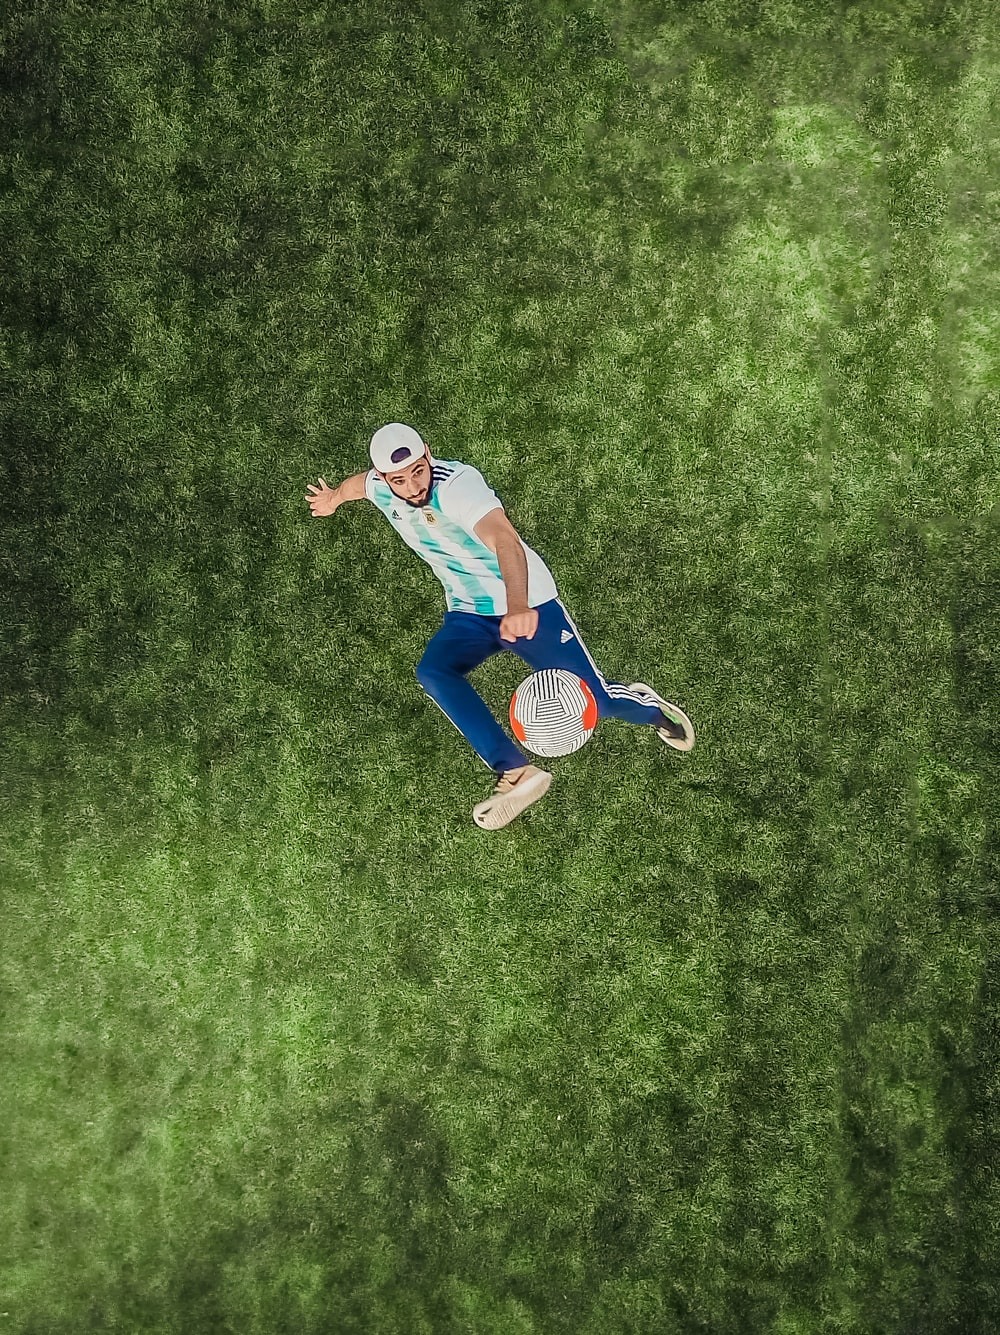 aerial view of man playing soccer ball on grass